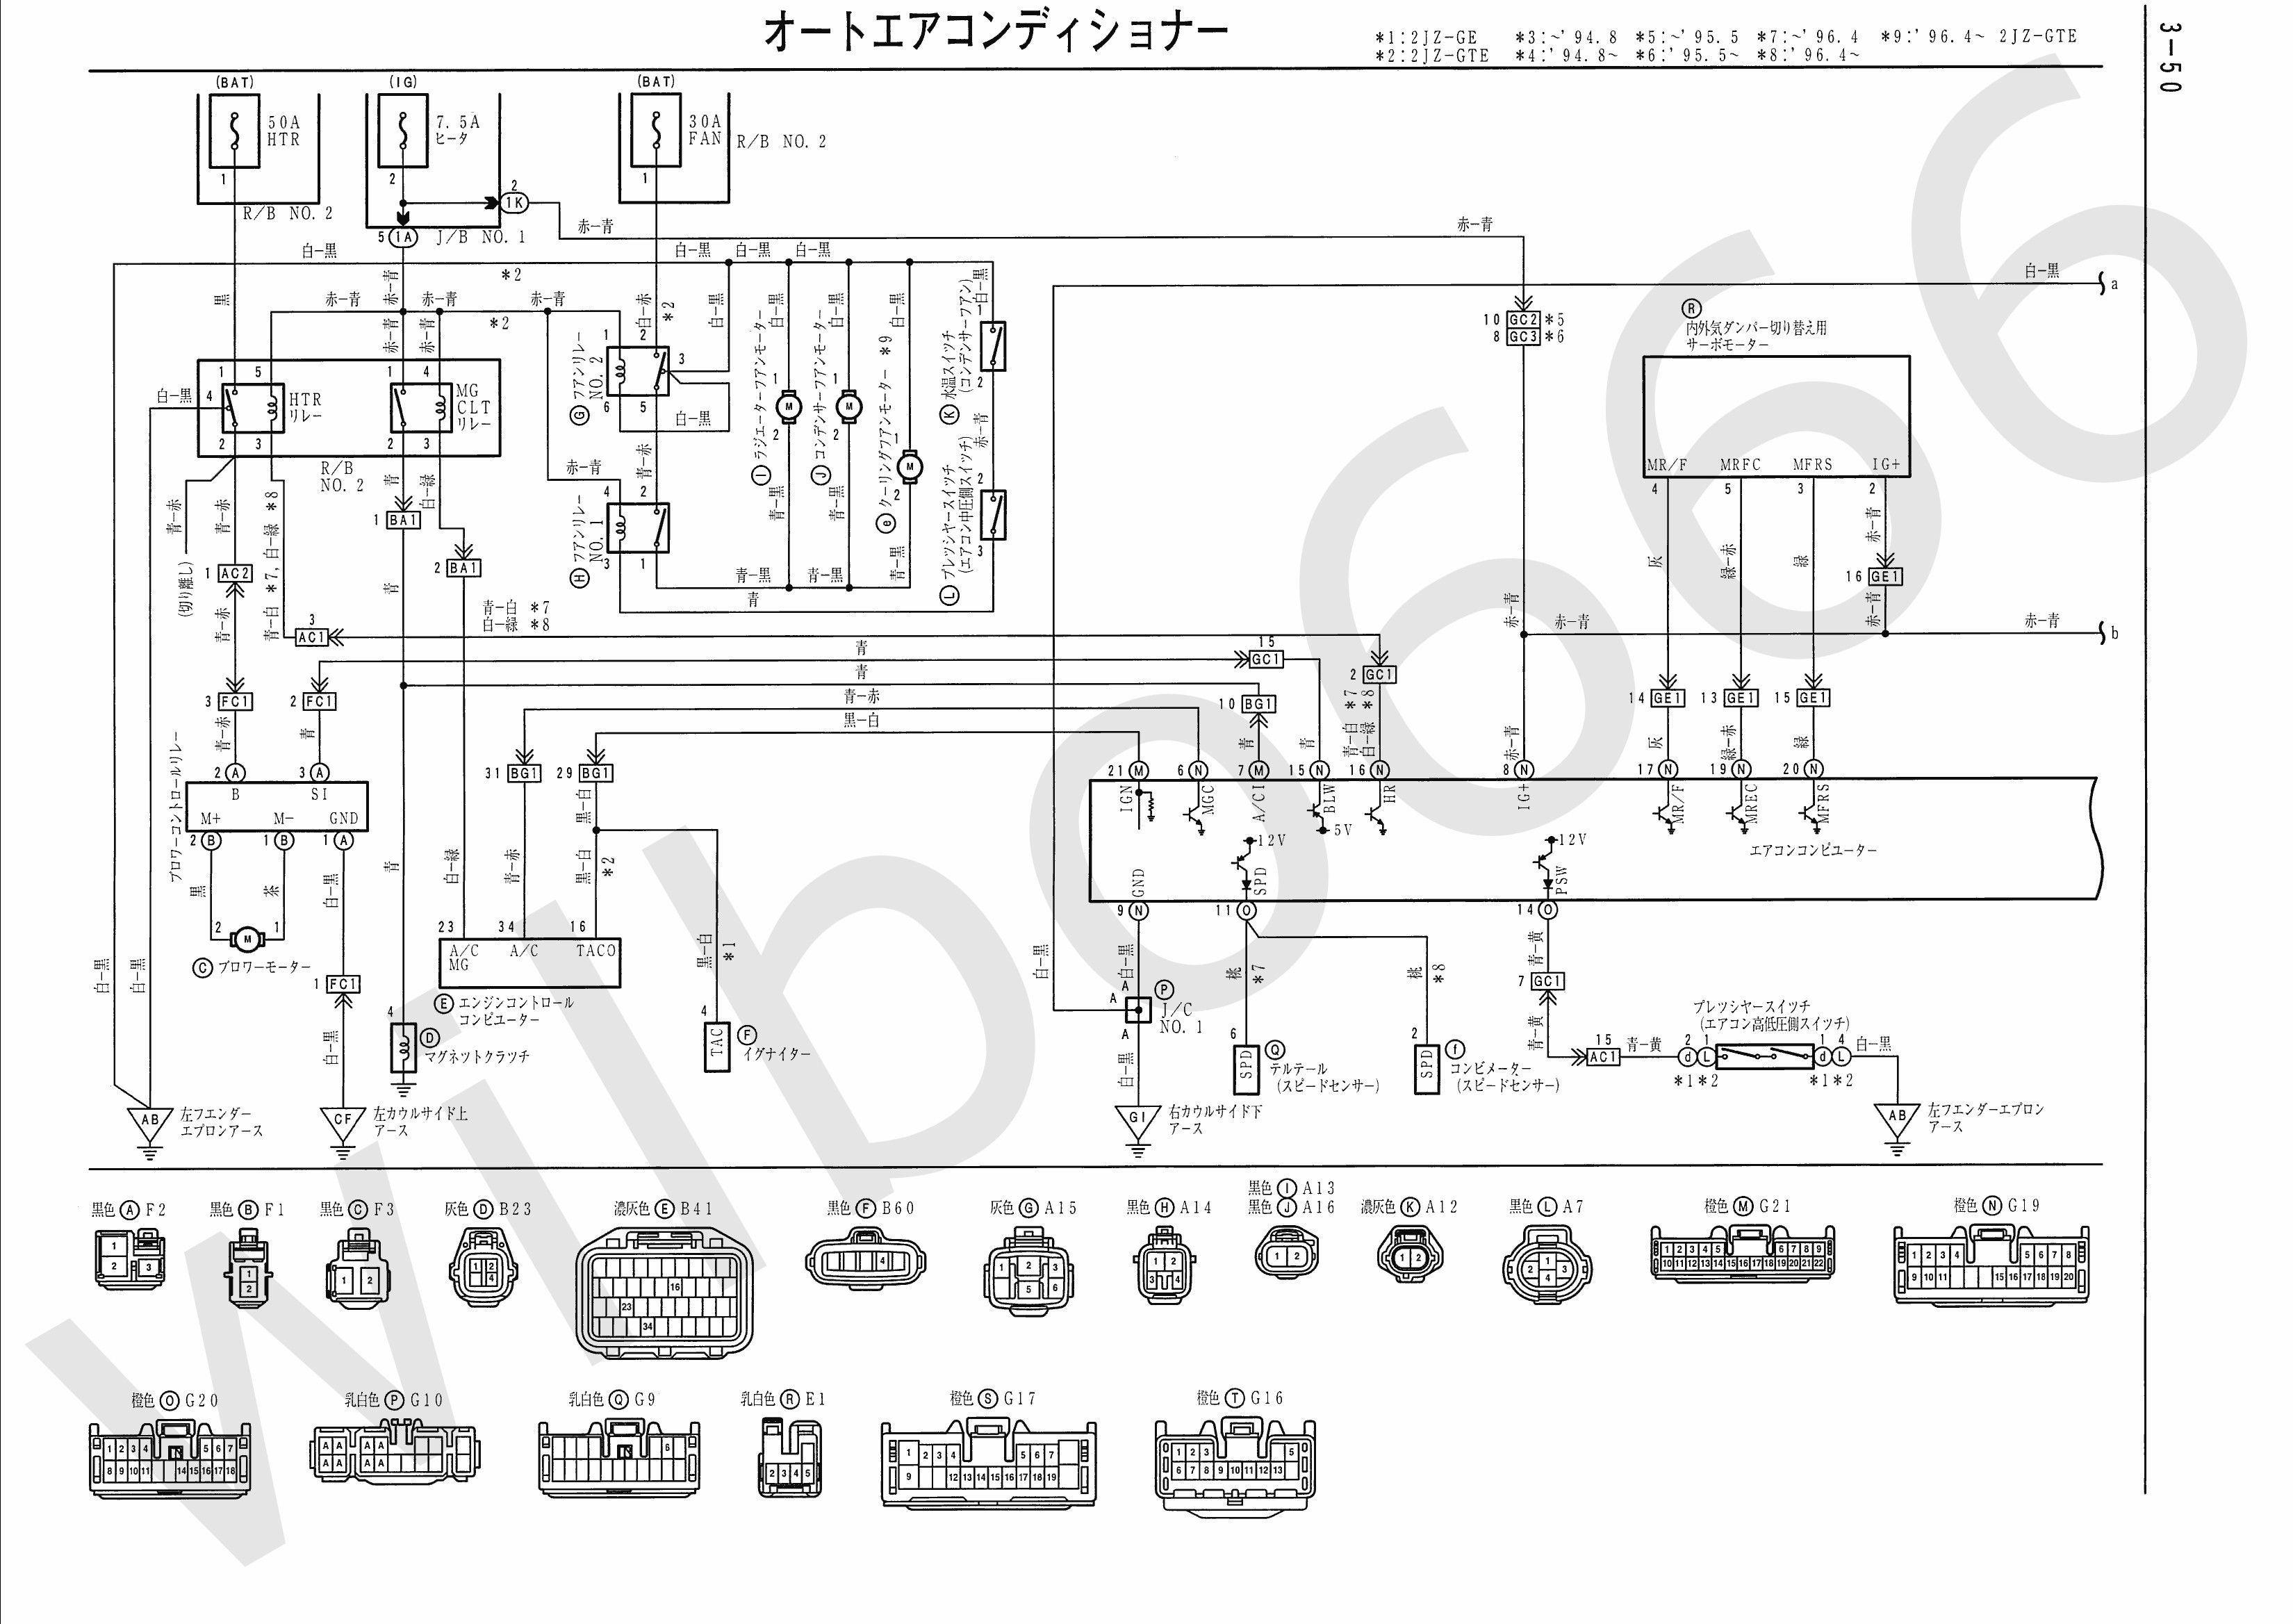 ac motor wiring diagram book Download-Ac Motor Wiring Diagram Book Refrence Wiring Diagram Books 4k Wallpapers Design 1-p